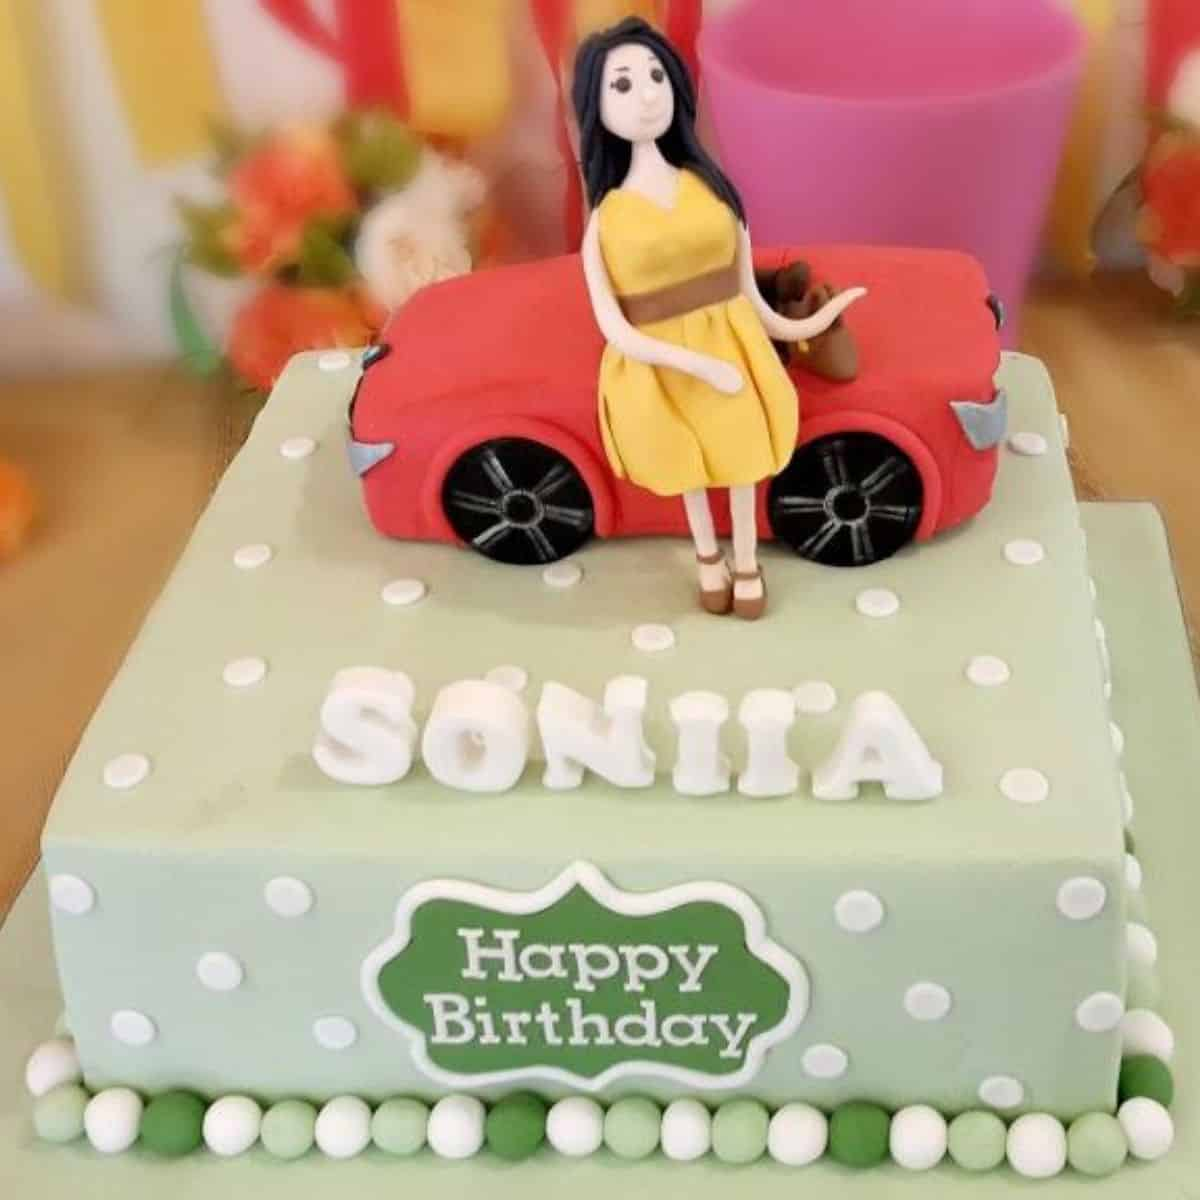 21st Birthday Cake For Girls A Decorating Tutorial Decorated Treats